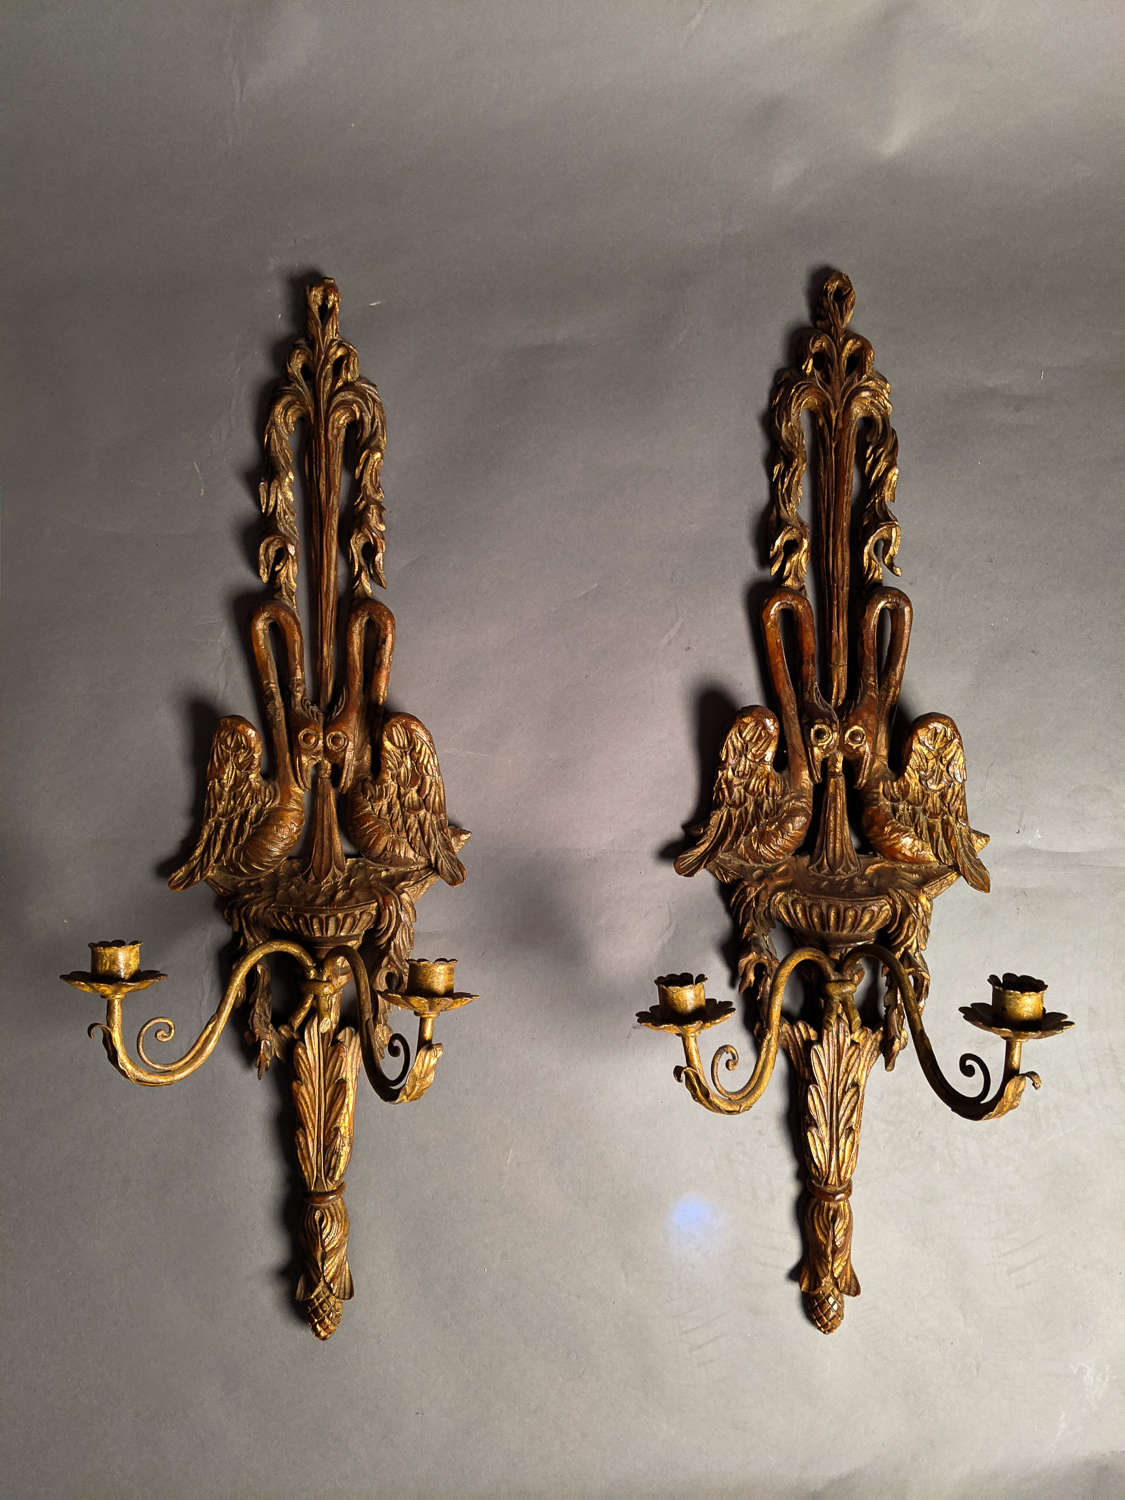 A 19th Century pair of Gilt Wood Swan Candle Sconces